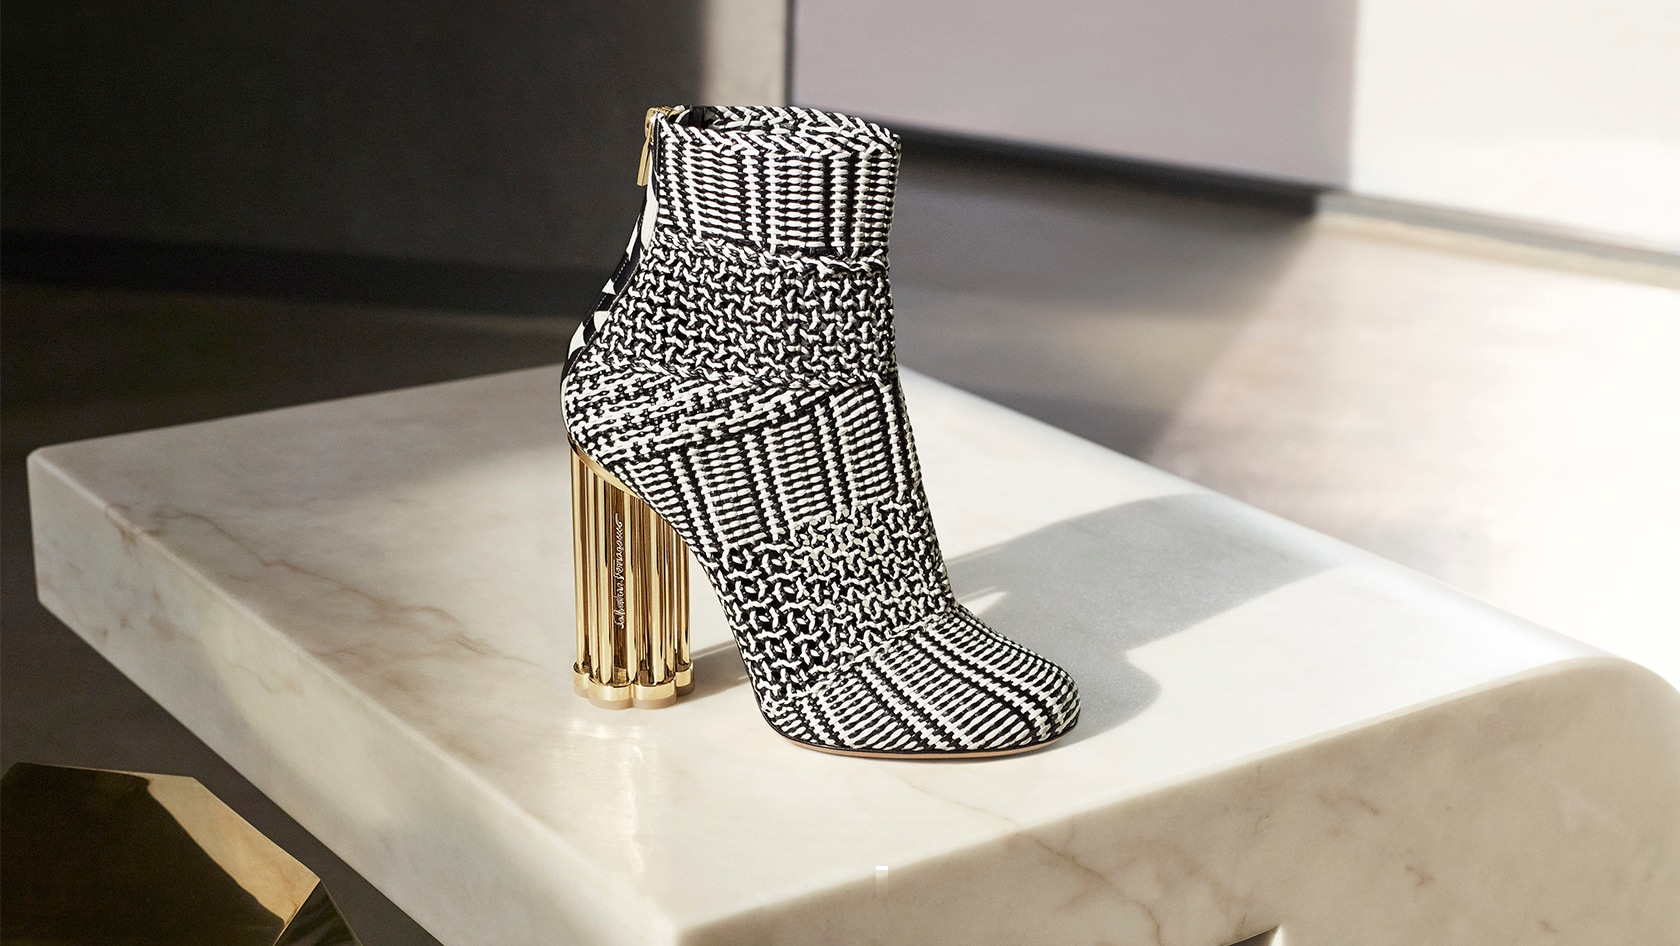 Salvatore Ferragamo - Graphic Woven Bootie with Cage Flower Heel - Italian Shoe Brands We Love - made in italy - italian shoes - luxury shoes - famous italian shoe designers - shoemaker to the stars - shoe art